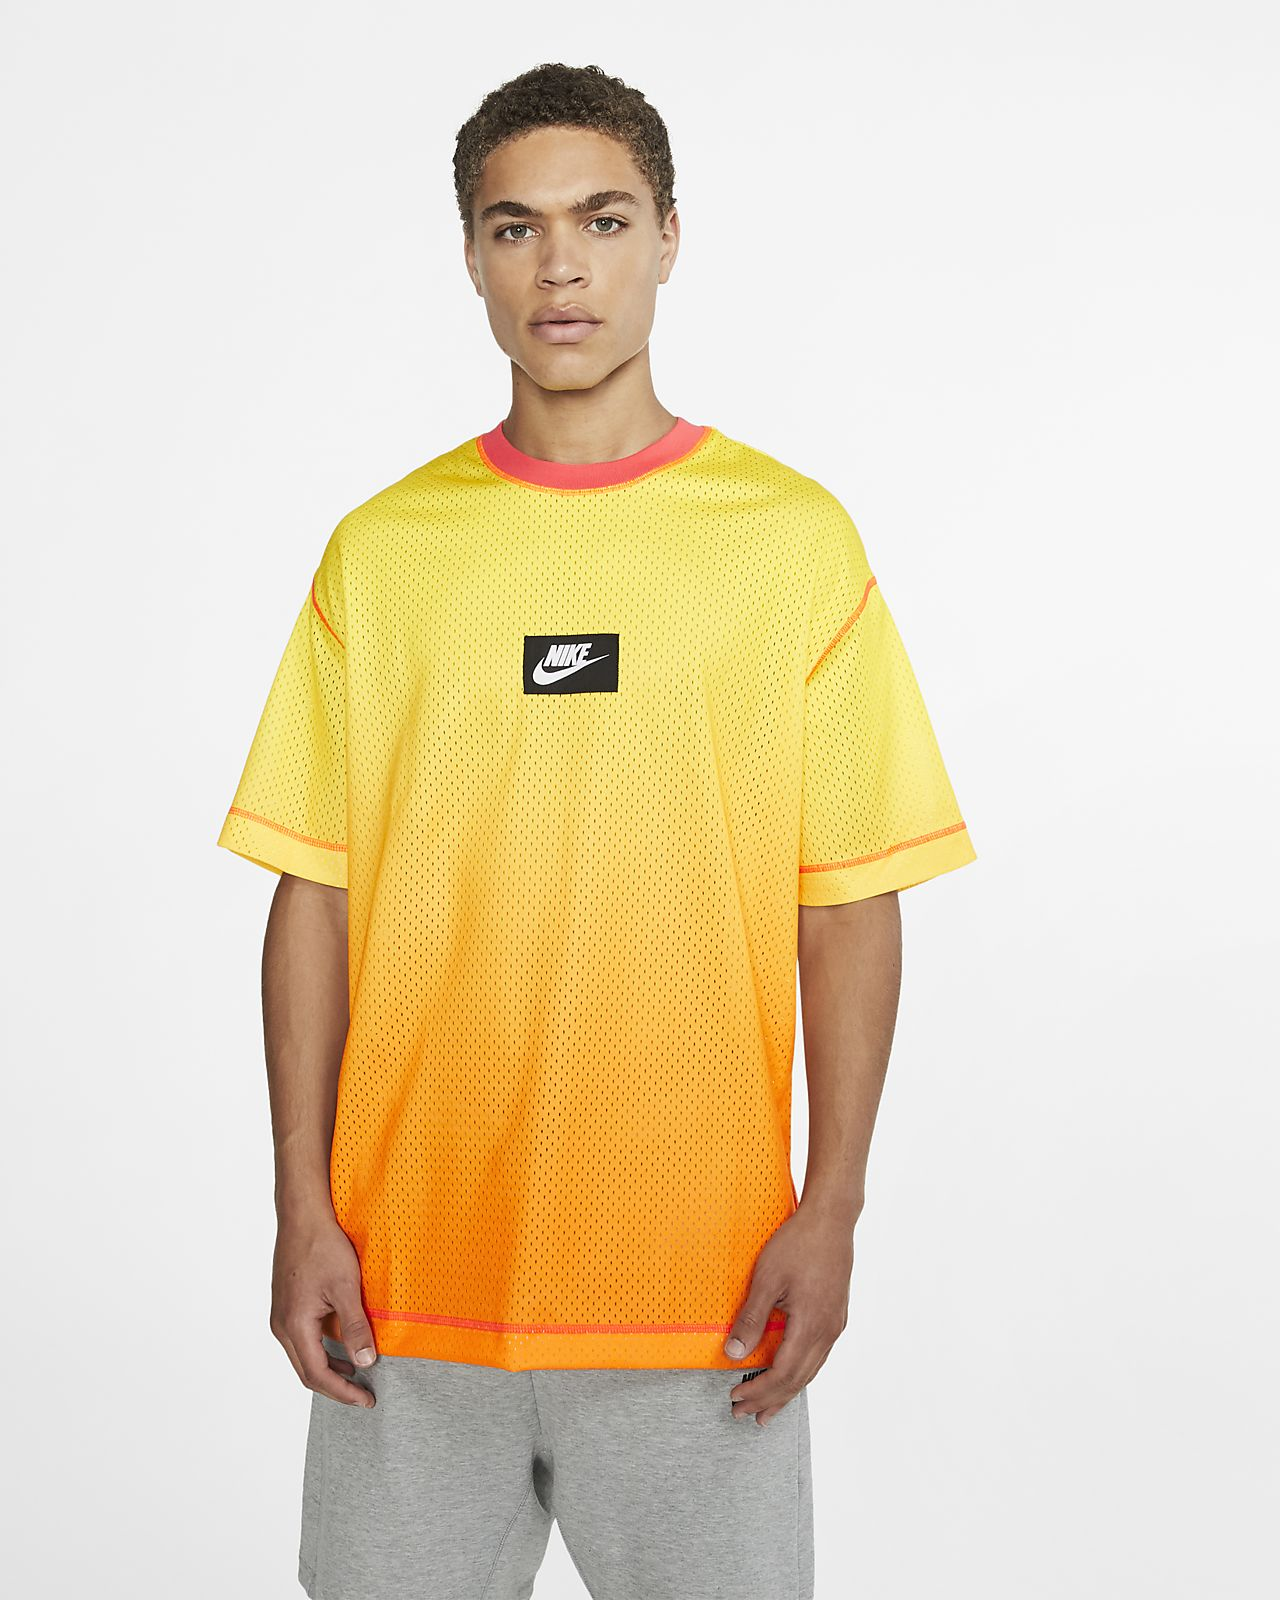 Nike Sportswear Men's Short-Sleeve Mesh Top